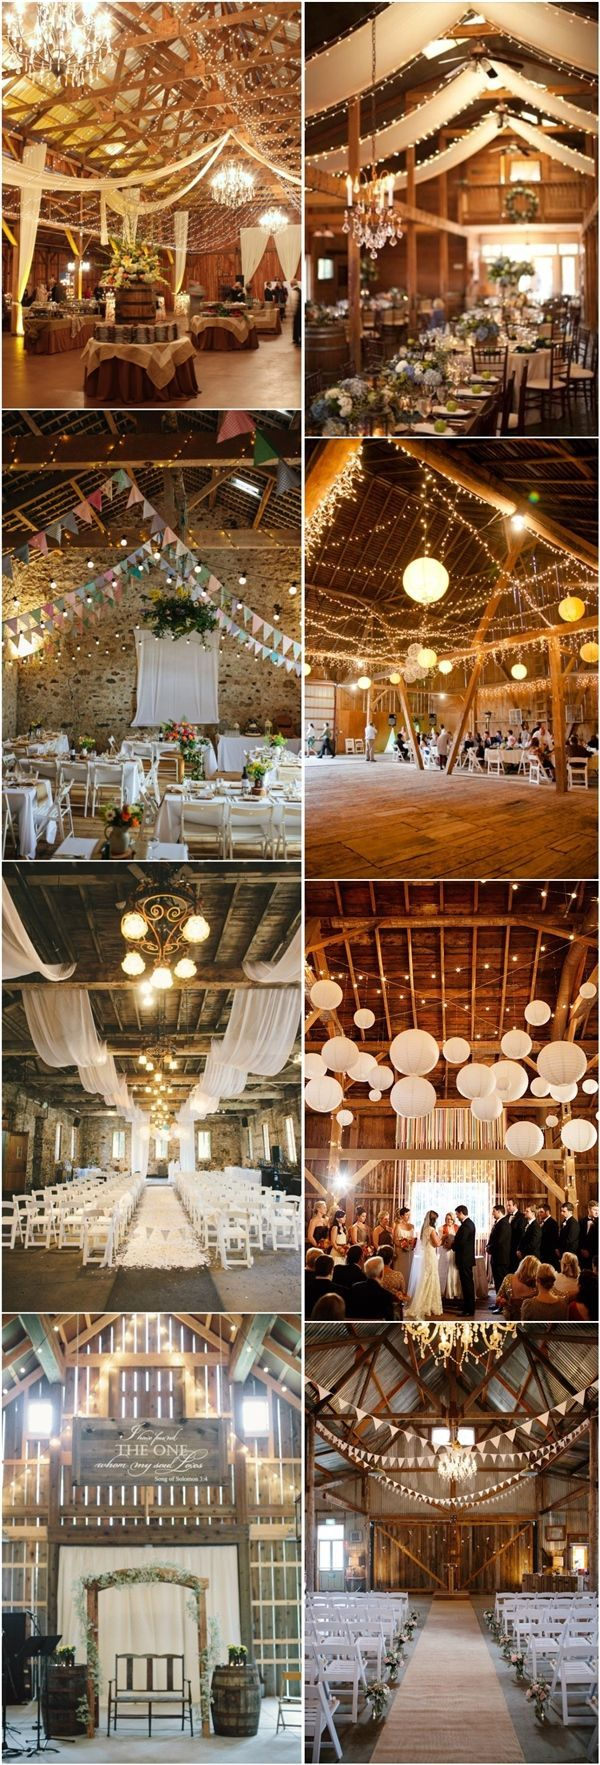 Gallery: rustic barn wedding ideas- country barn wedding decor ideas - Deer Pearl Flowers